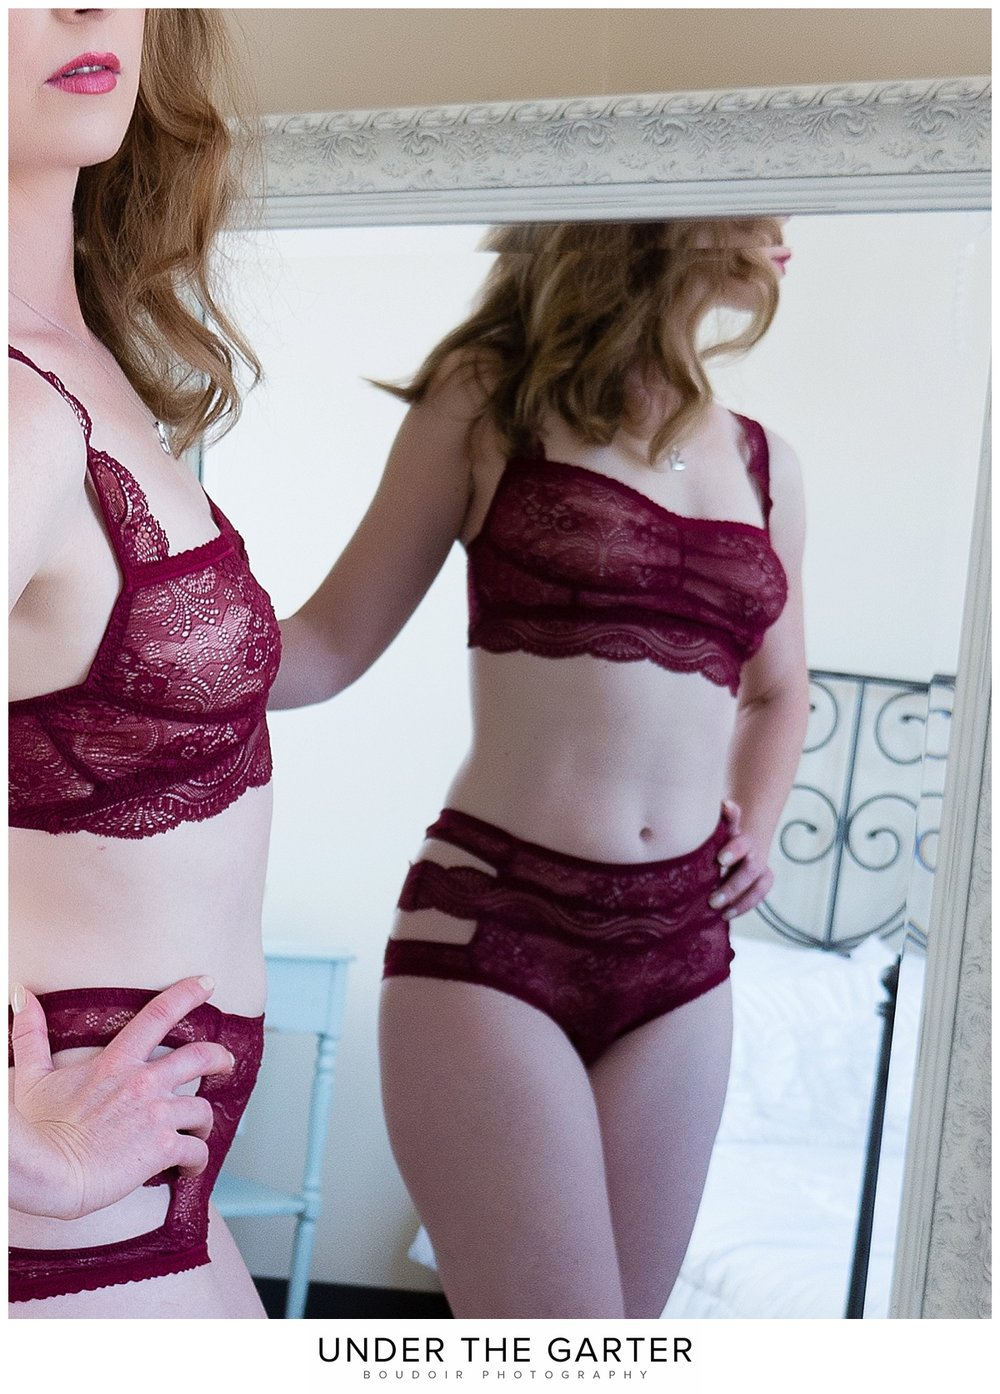 boudoir photography denver burgundy lace lingerie.jpg